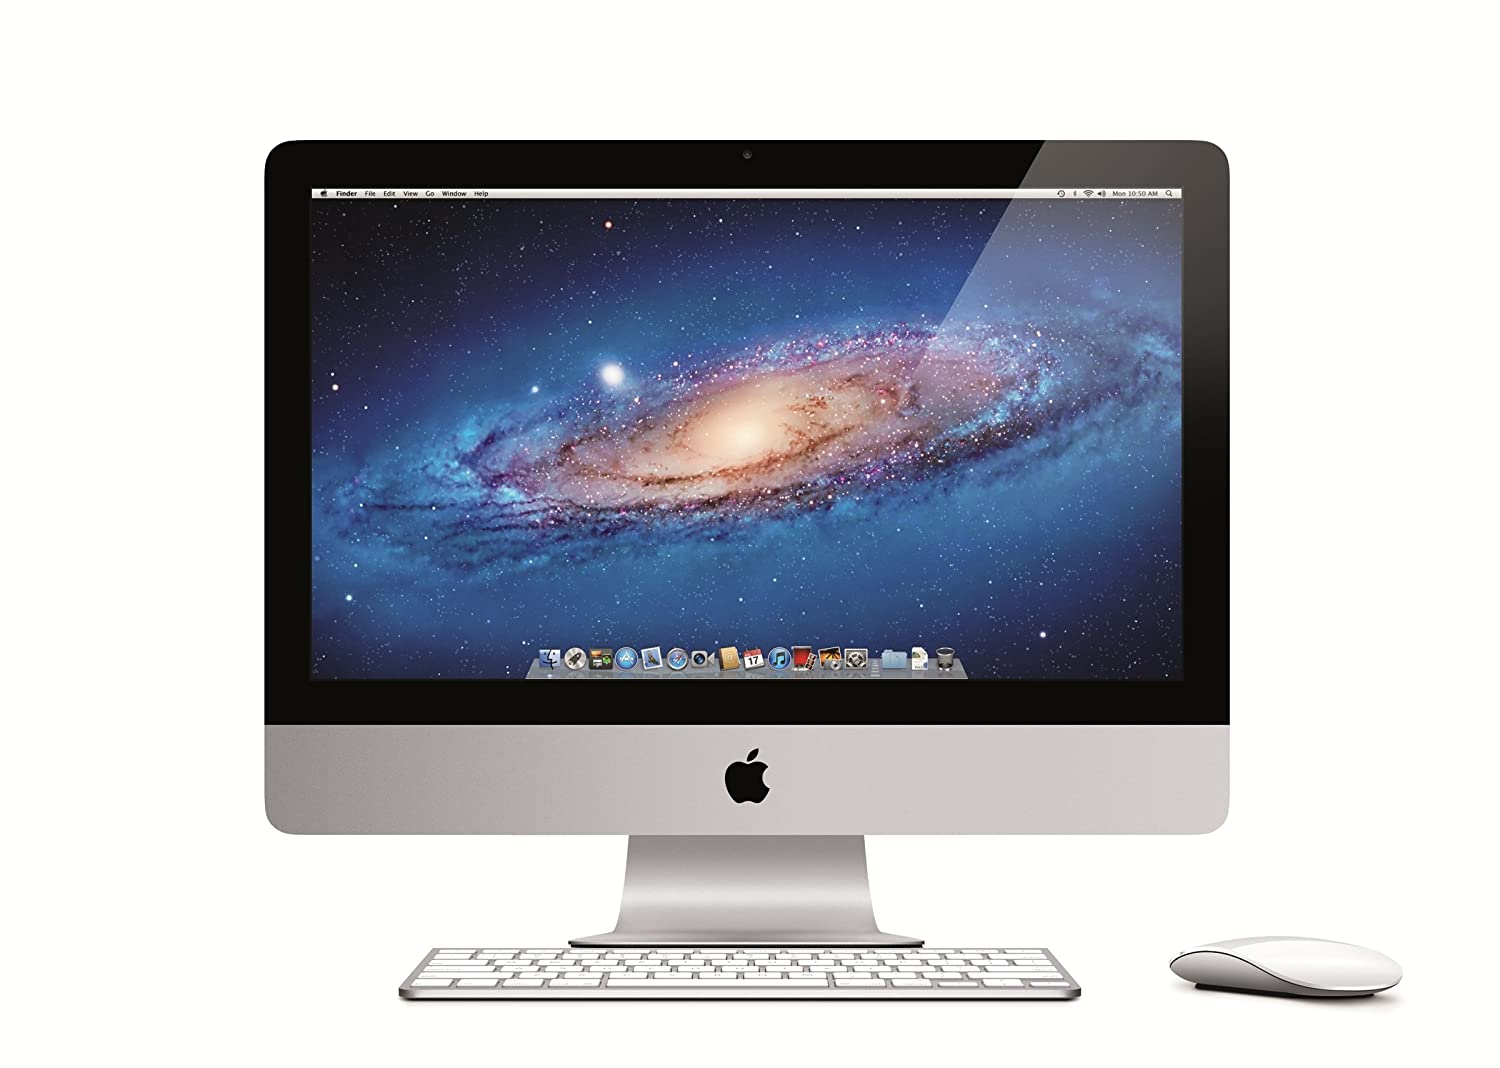 mac ordinateur de bureau 28 images apple imac ordinateur de bureau 21 5 quot intel i3 1 to. Black Bedroom Furniture Sets. Home Design Ideas